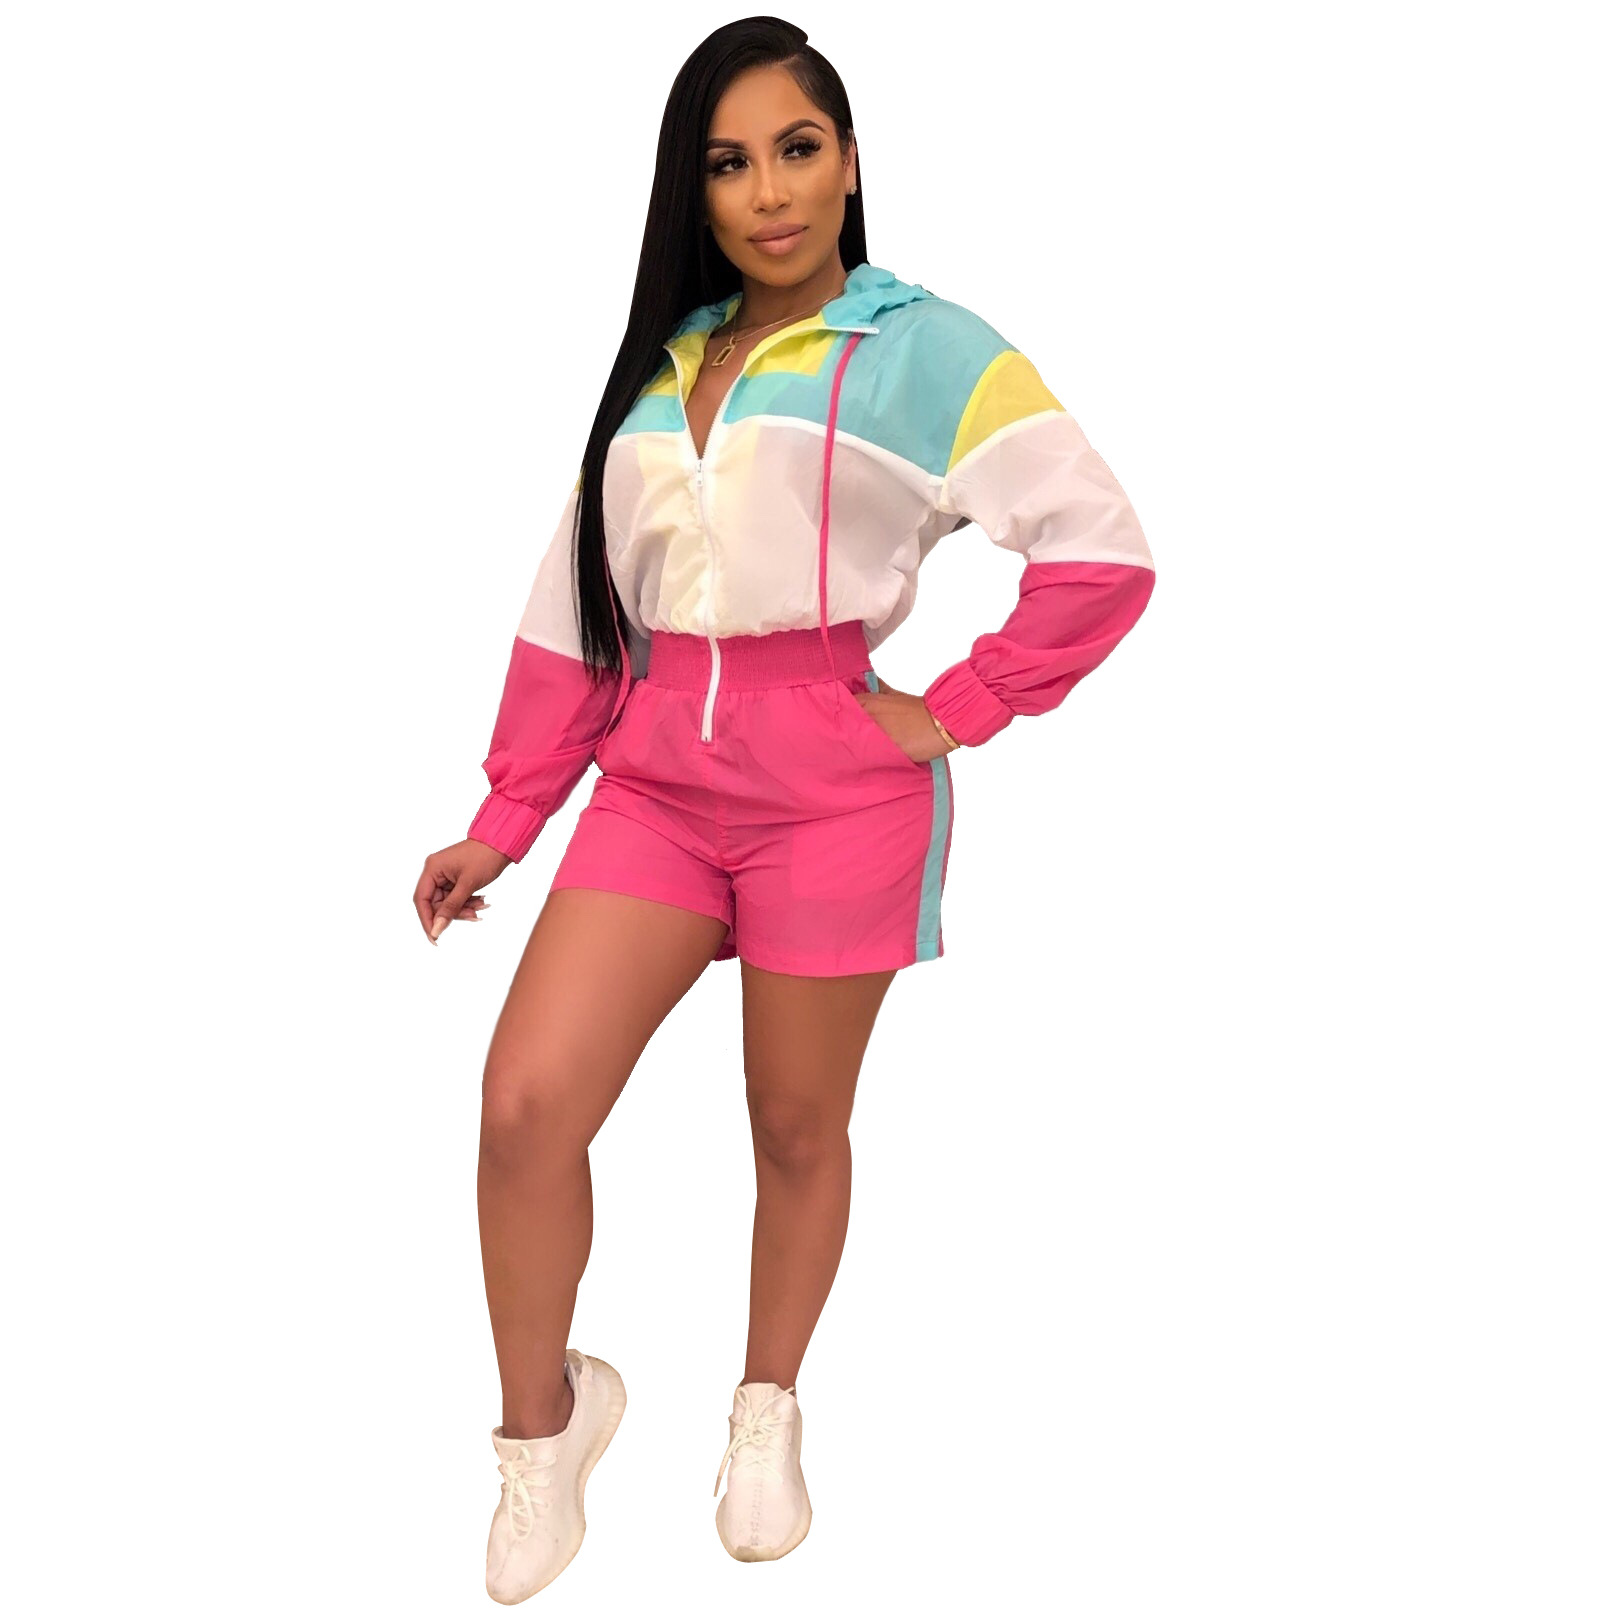 Xm6075 Major Platform Hot Sales Europe And America WOMEN'S Dress Mixed Colors Casual Loose-Fit Onesie Jumpsuit